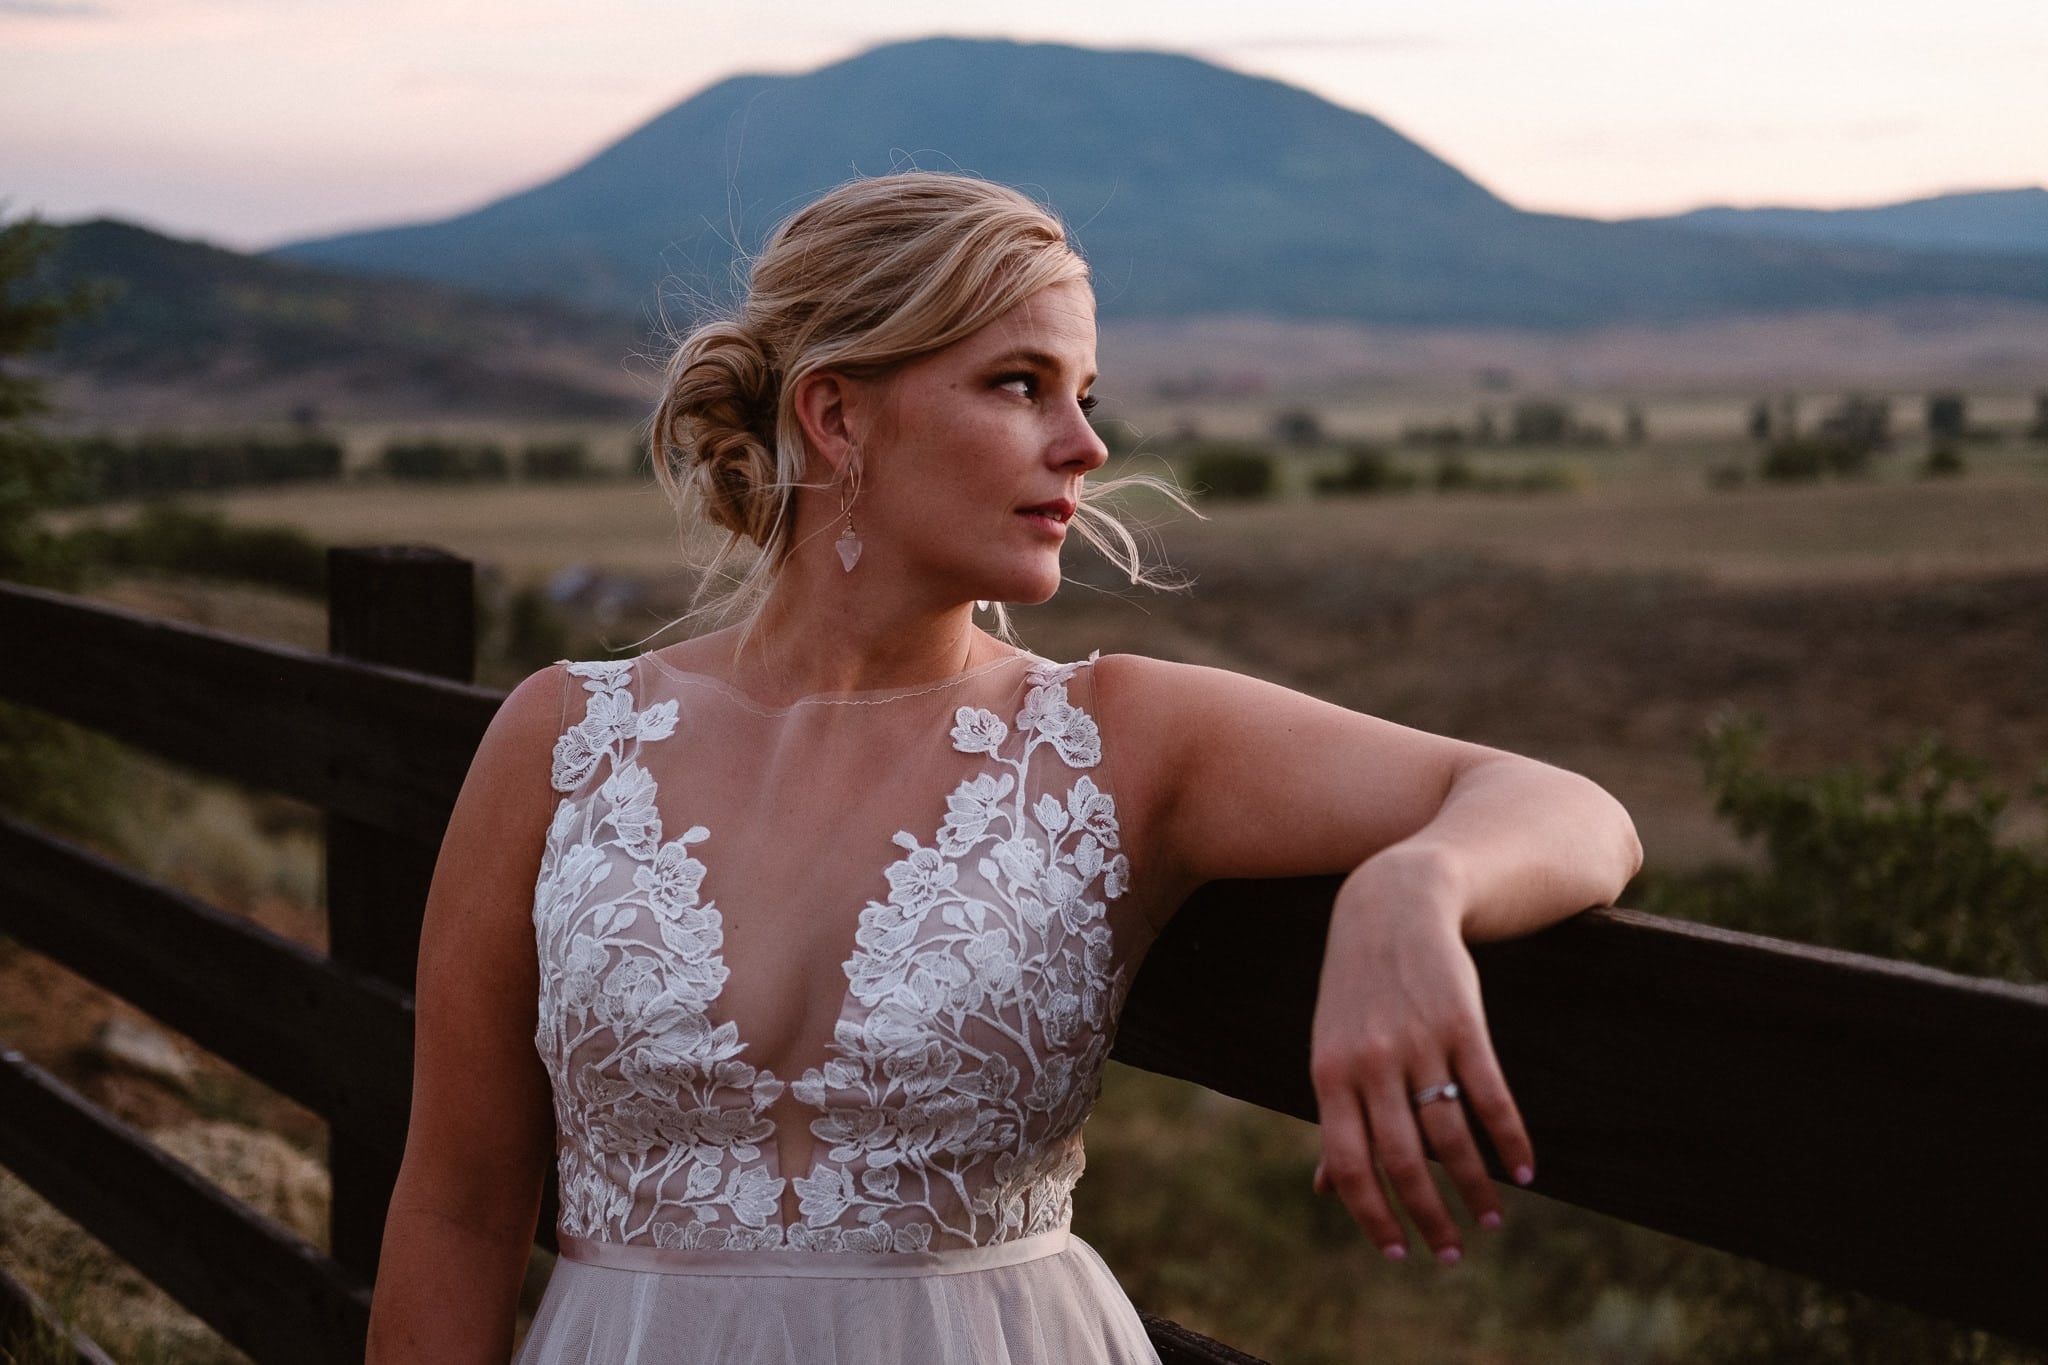 Steamboat Springs wedding photographer, La Joya Dulce wedding, Colorado ranch wedding venues, bridal portraits at sunset, bride with lace top wedding dress